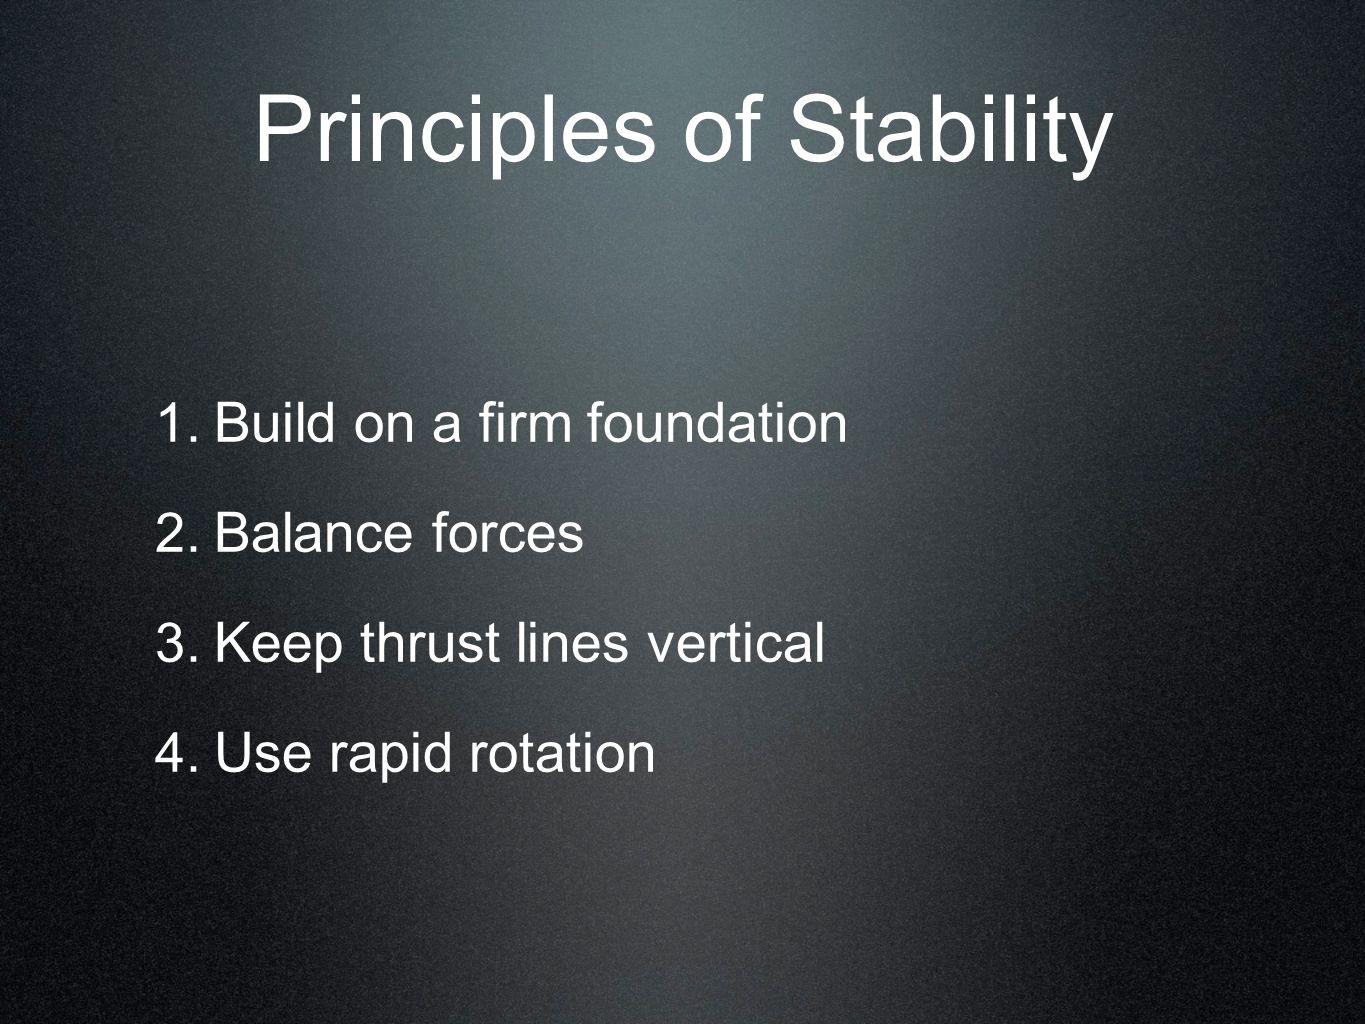 1. Build on a firm foundation 2. Balance forces 3. Keep thrust lines vertical 4. Use rapid rotation